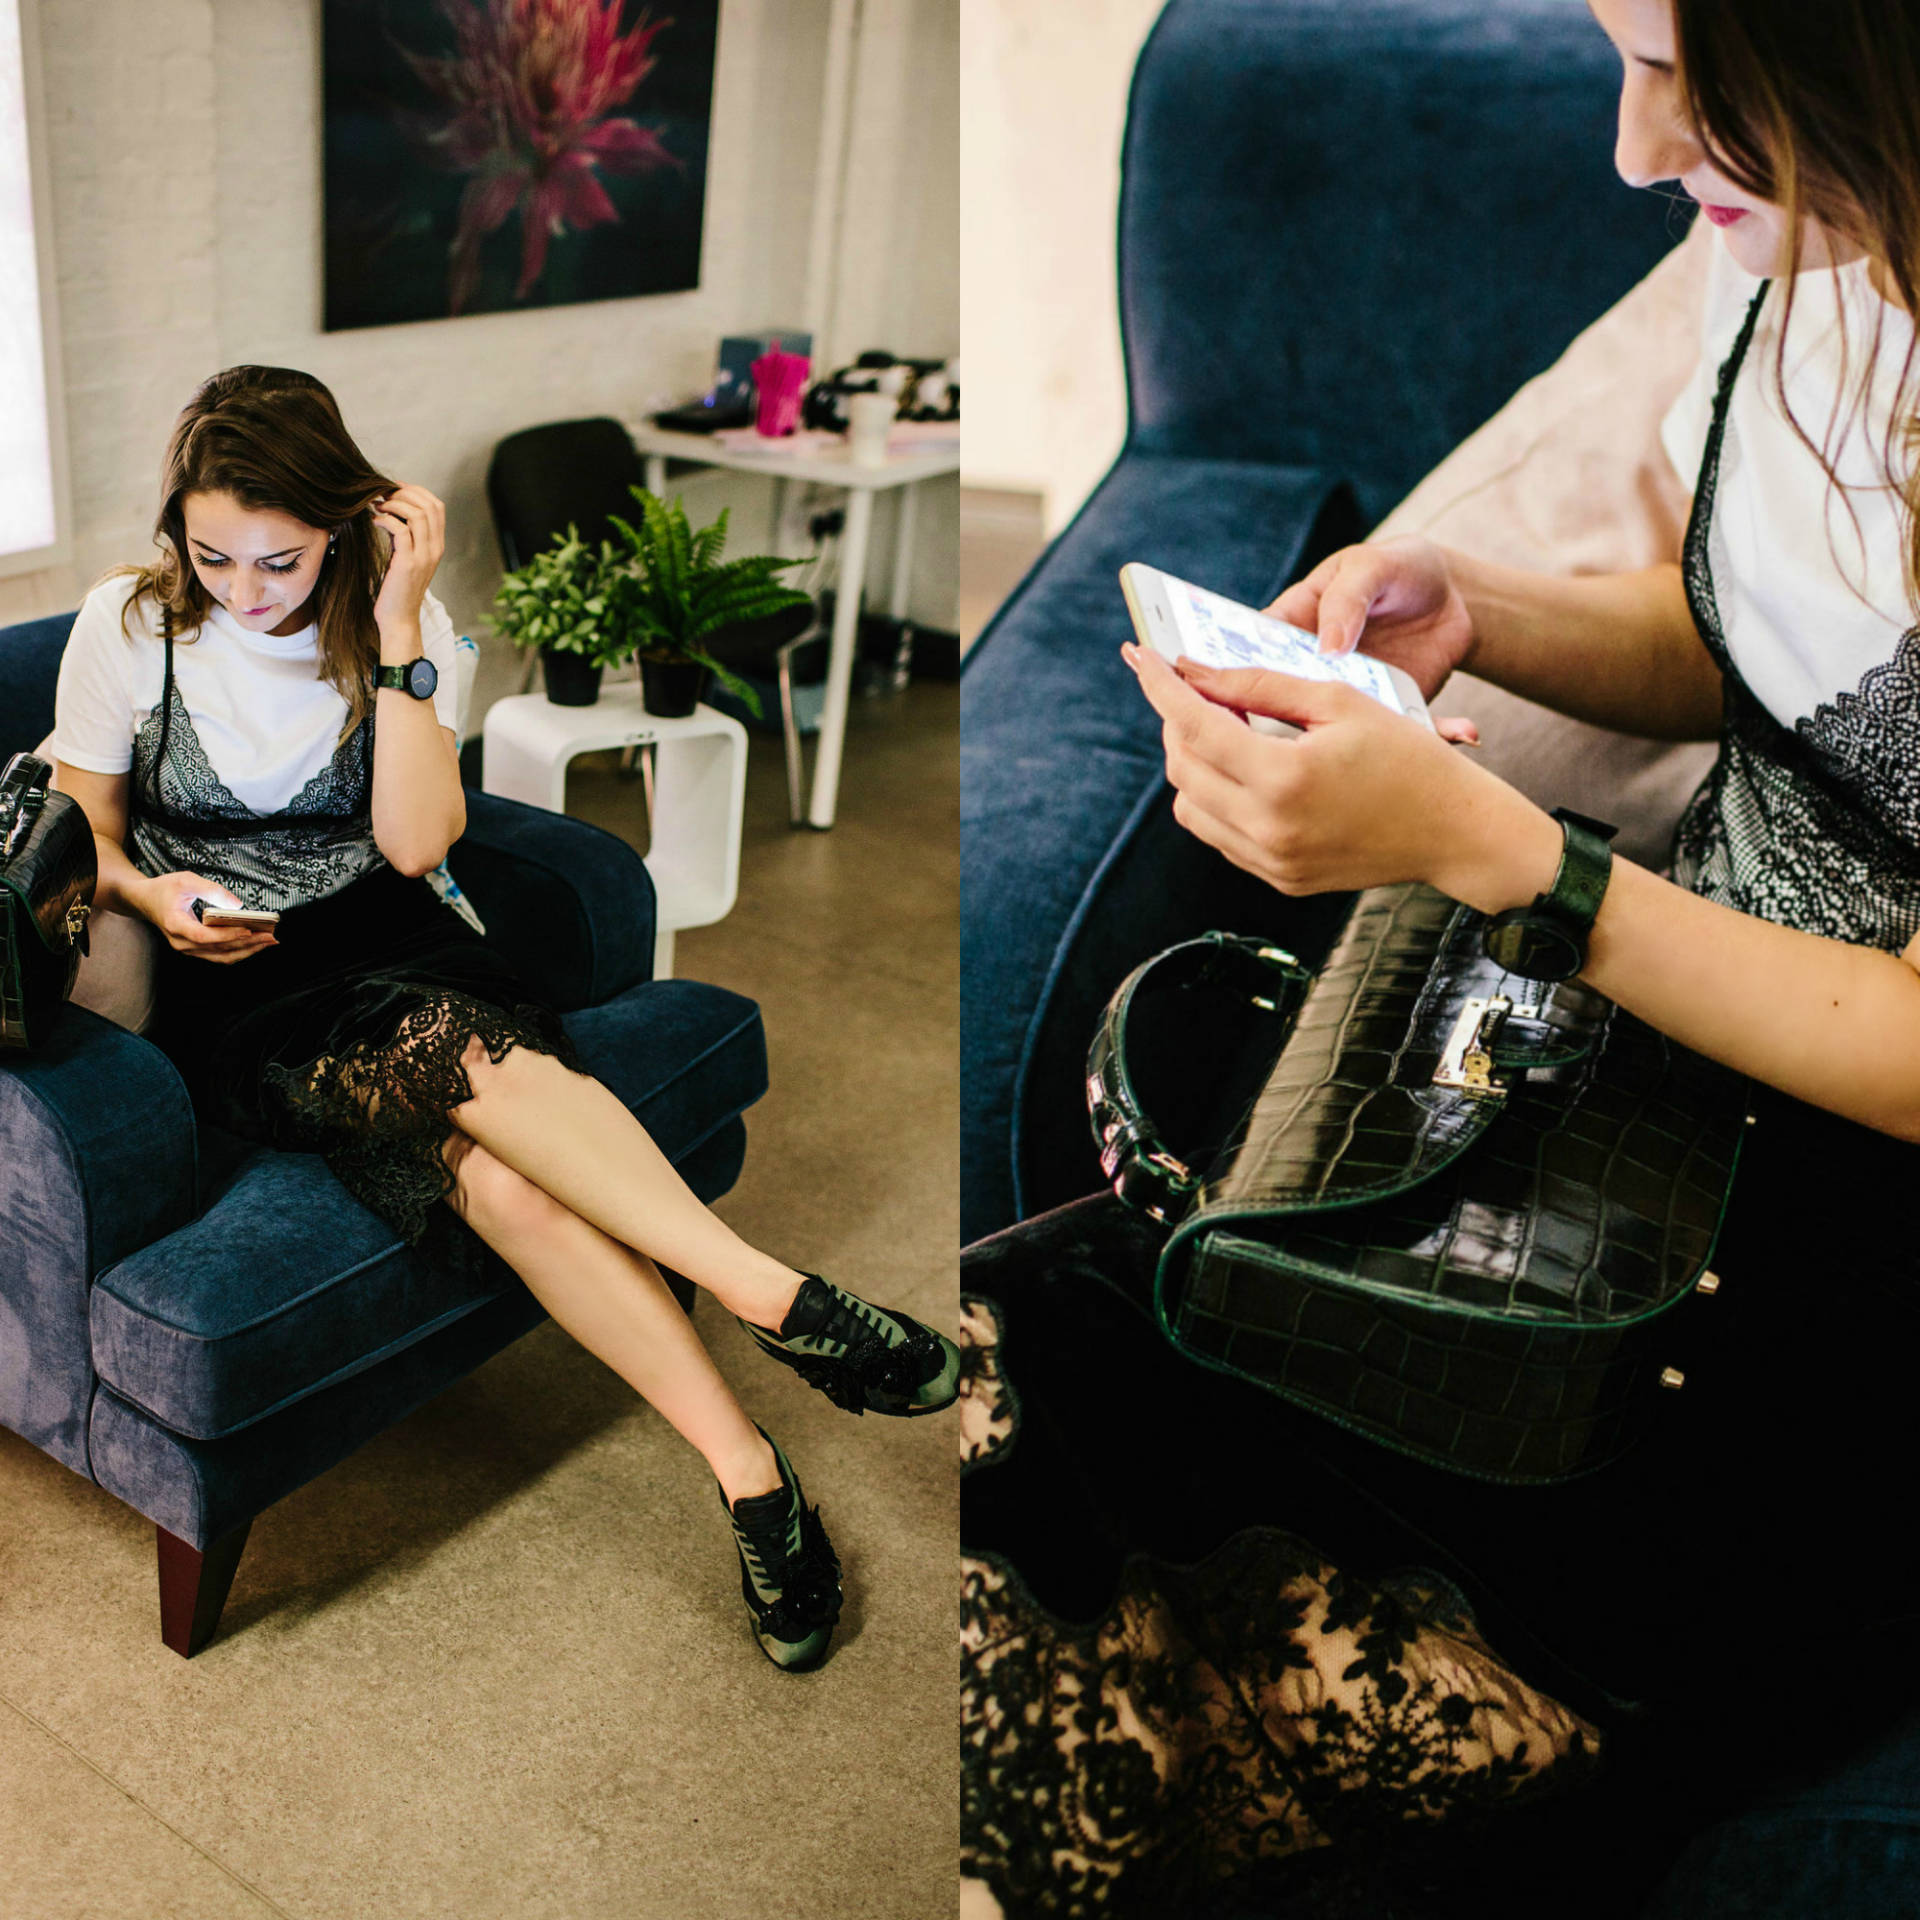 Where bloggers love to hang out during fashion week